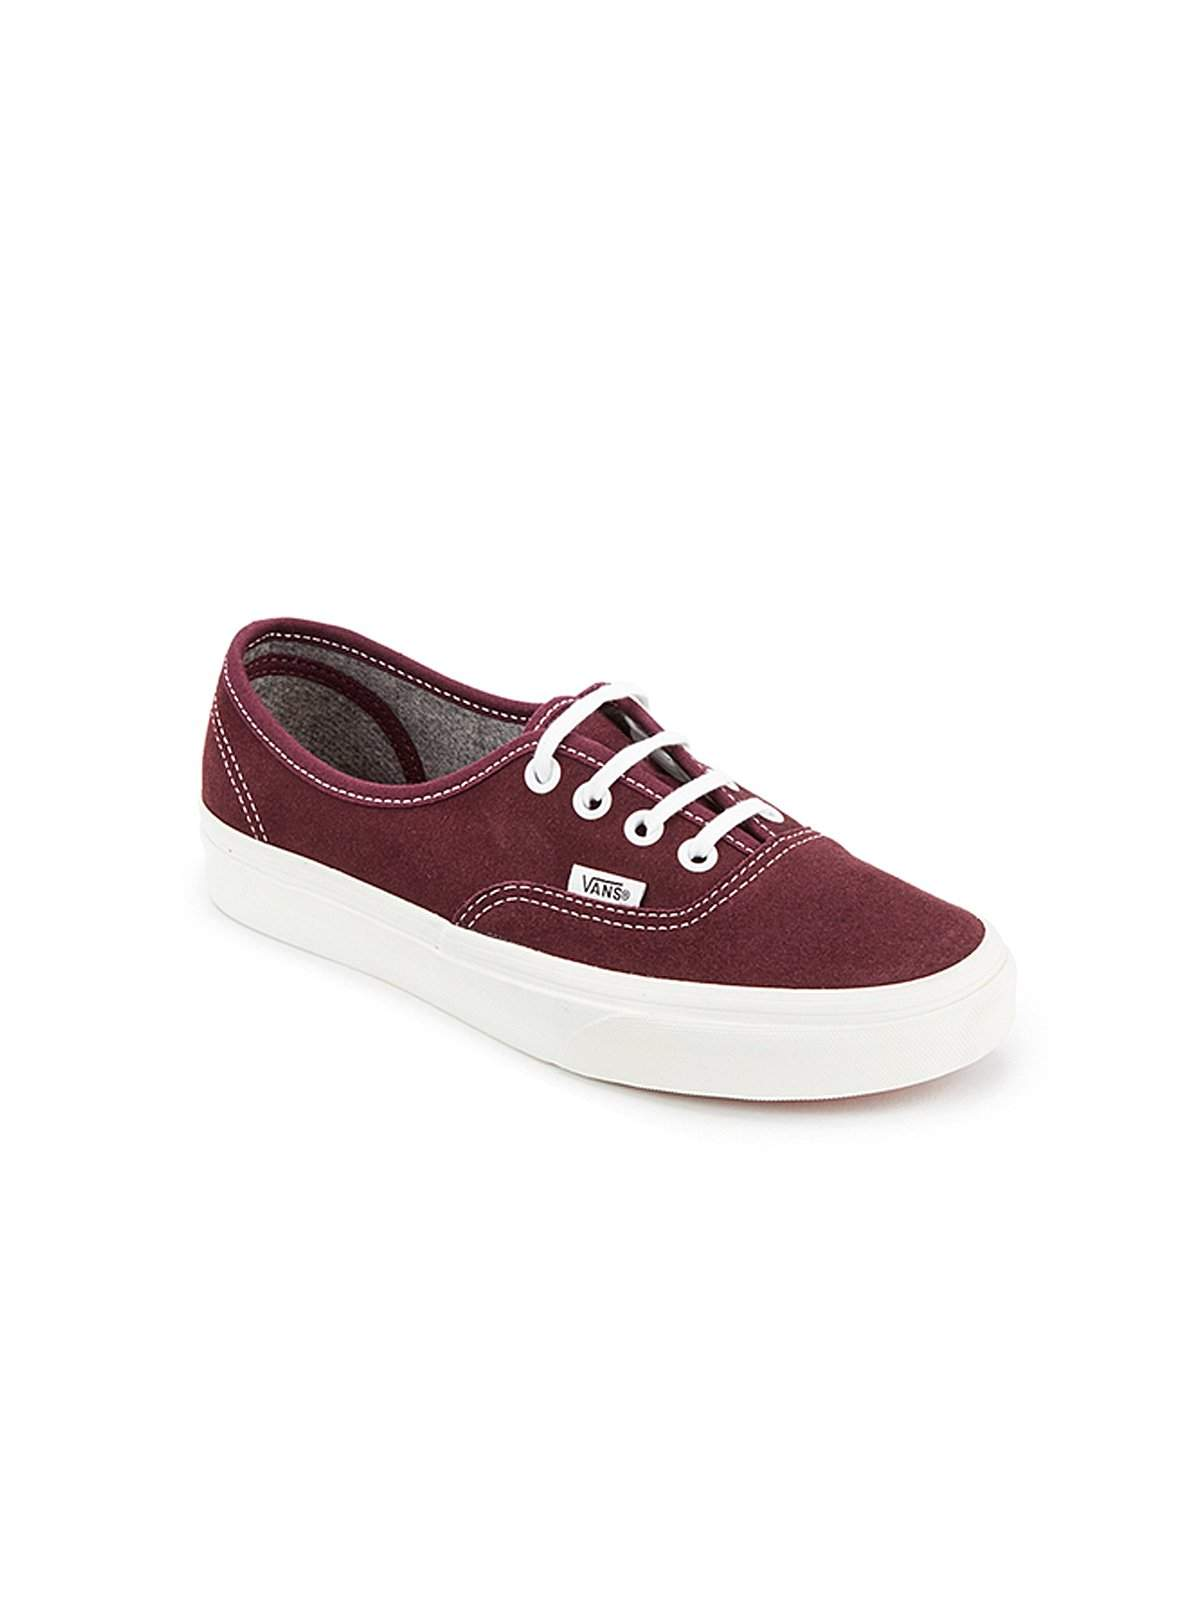 Vans Authentic Trainers Varsity Suede Red - MORE by Morello - Indonesia